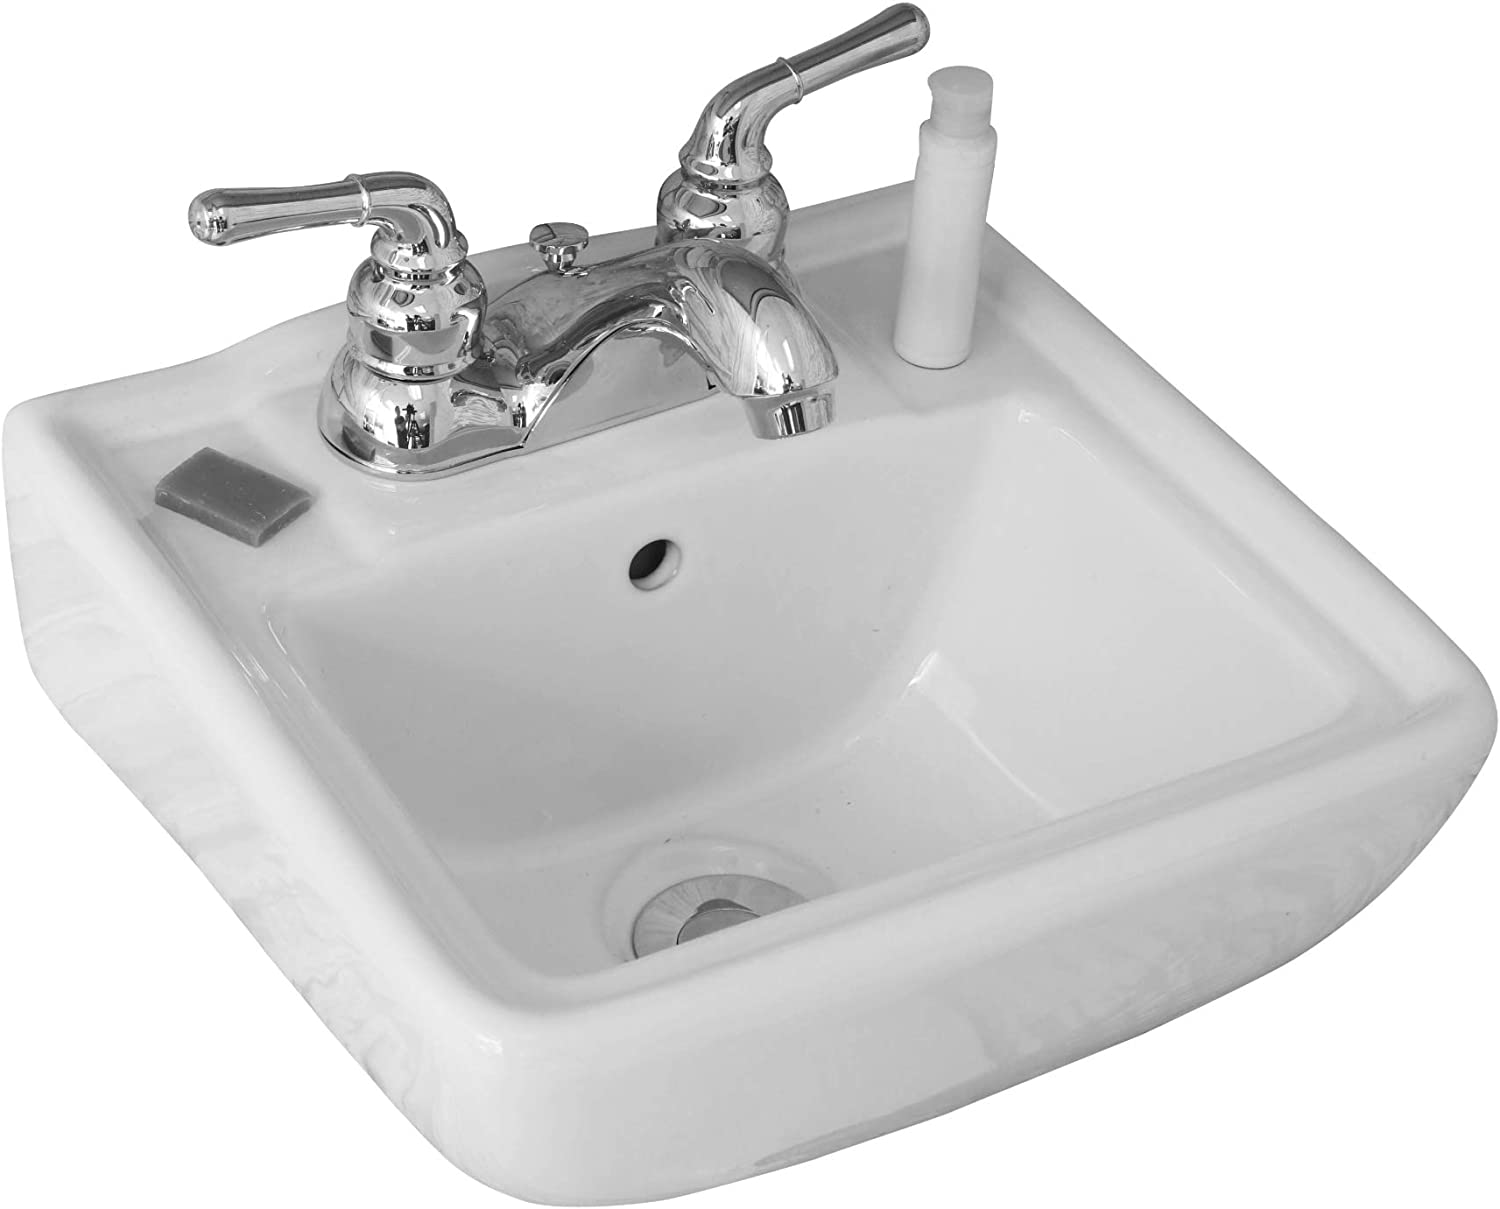 Small Wall Mount Bathroom Sink 12 4 X11 White Amazon Com